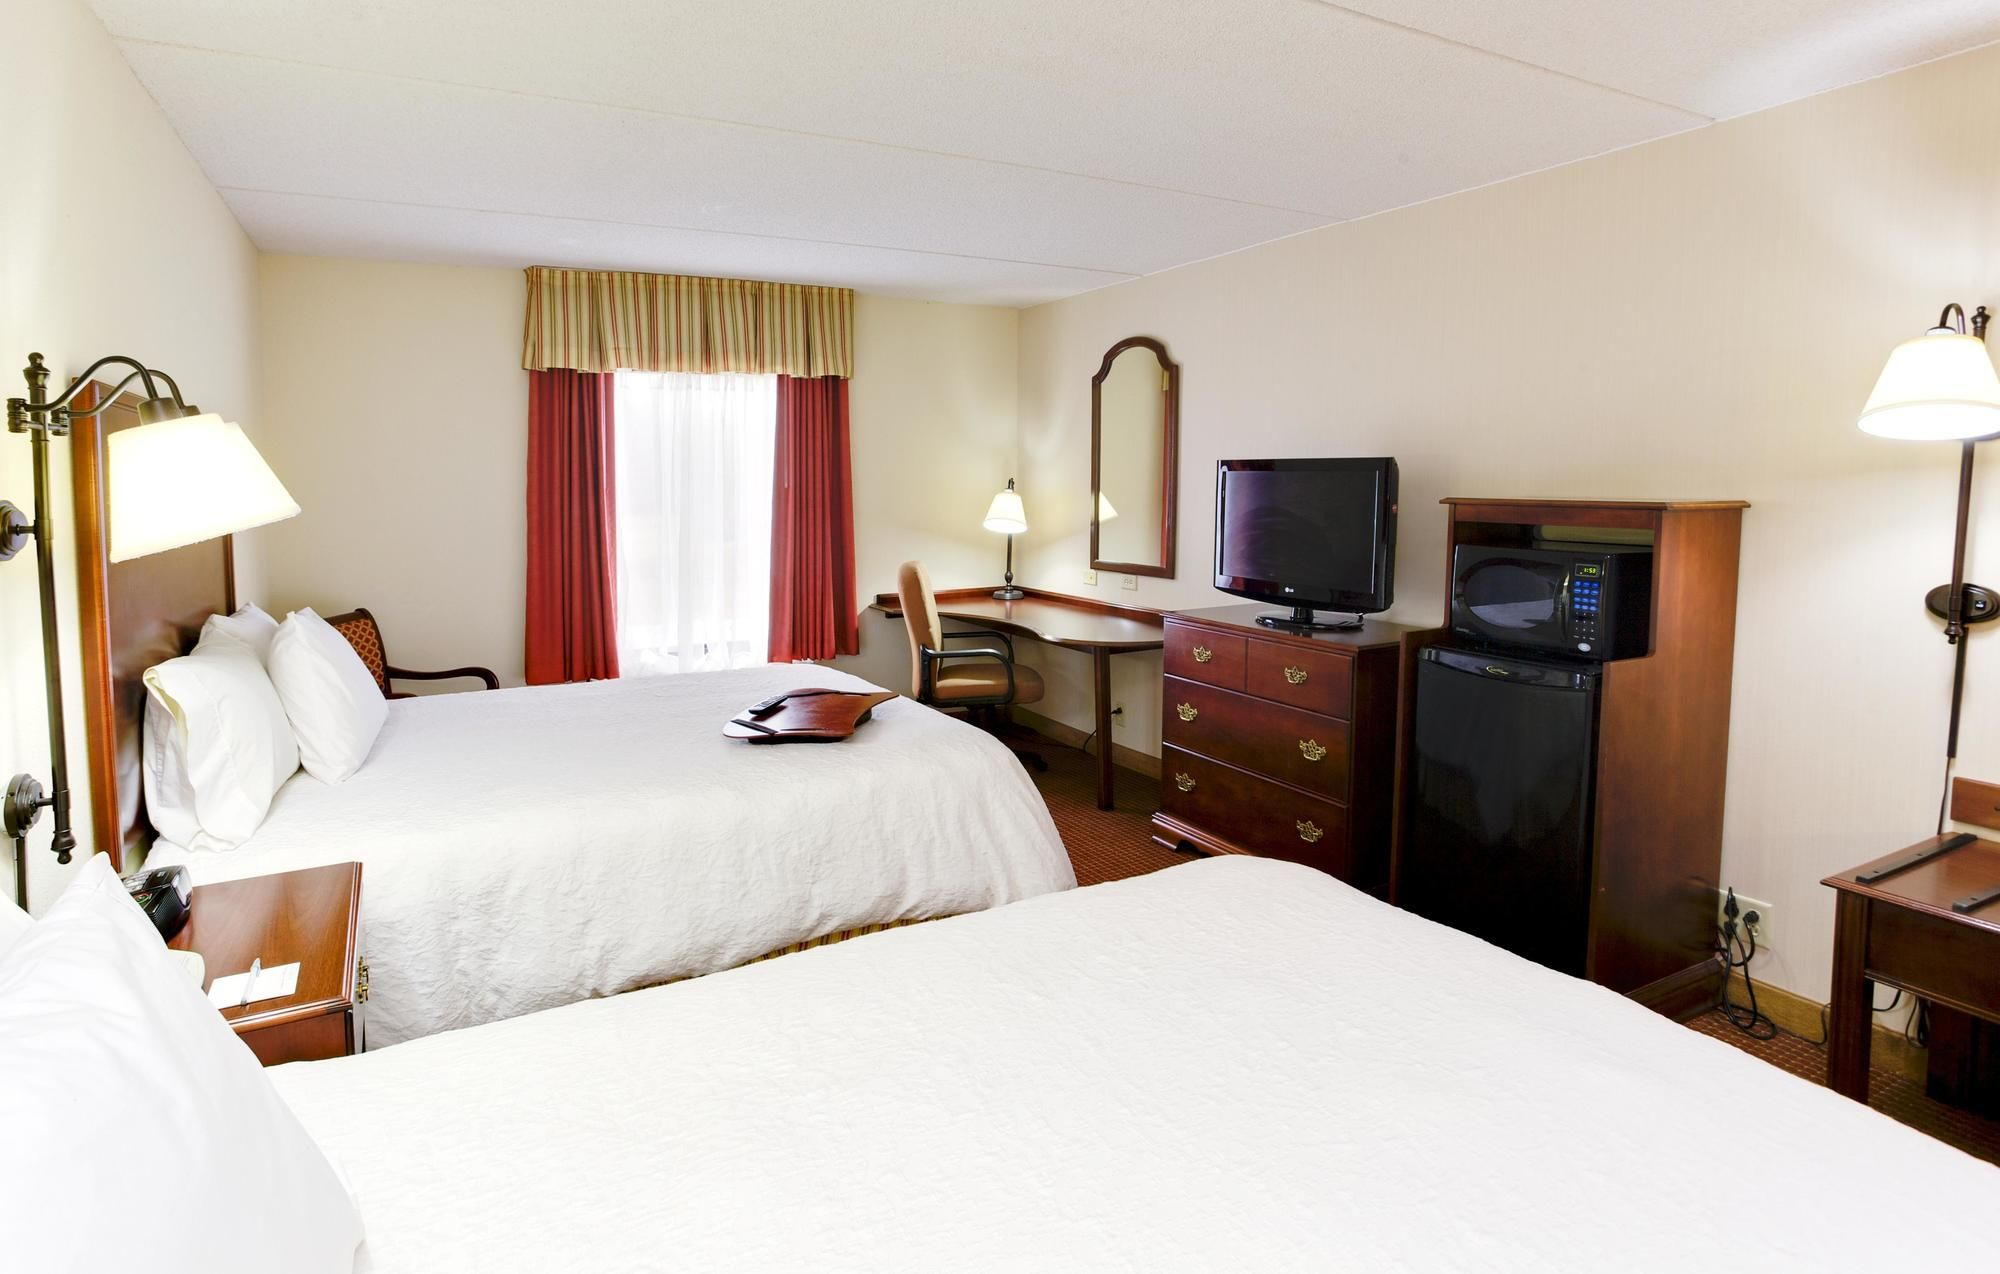 Emporia Hotel Coupons For Emporia Virginia